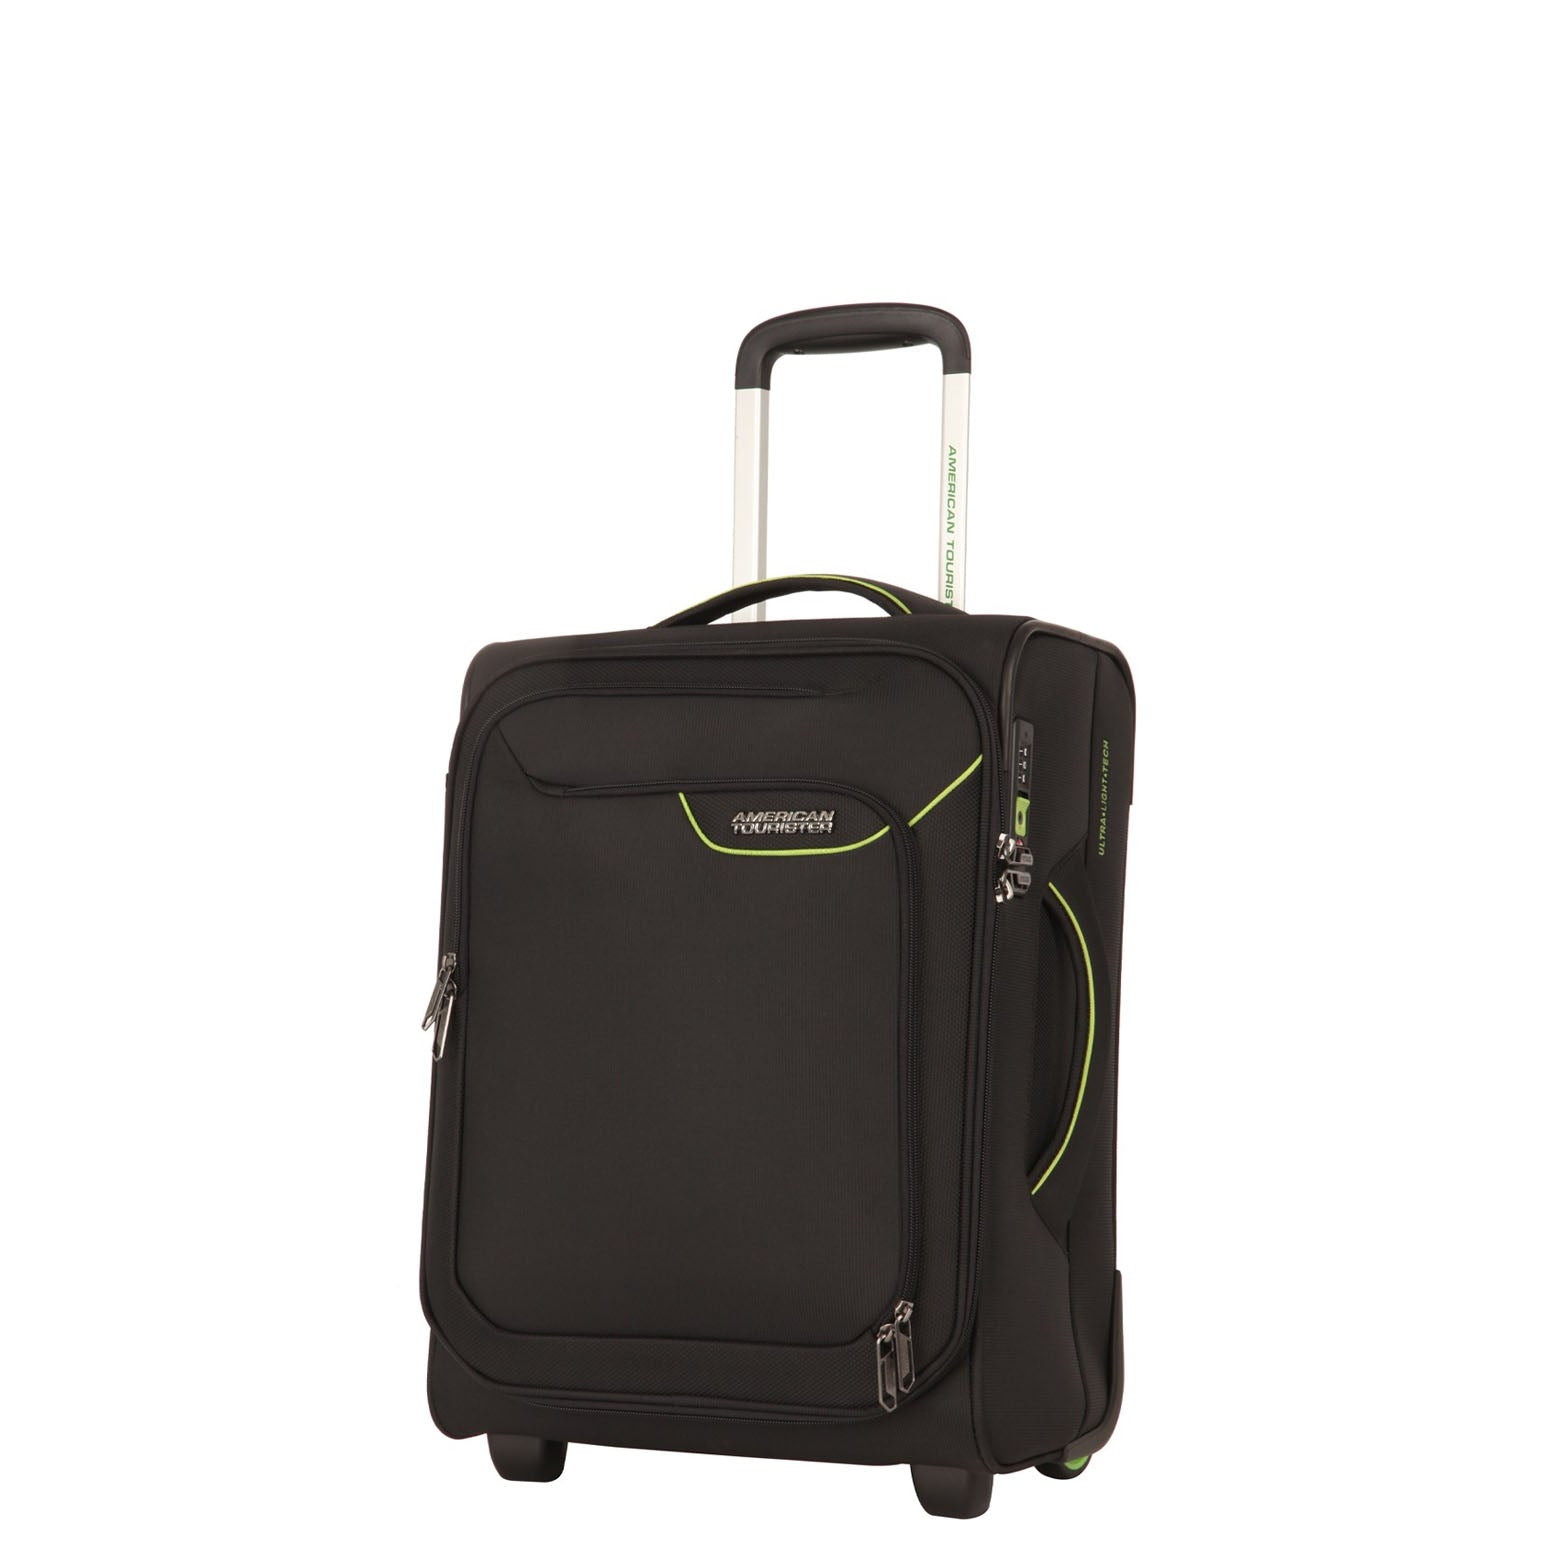 American Tourister Applite 4 Security 50cm Cabin Suitcase